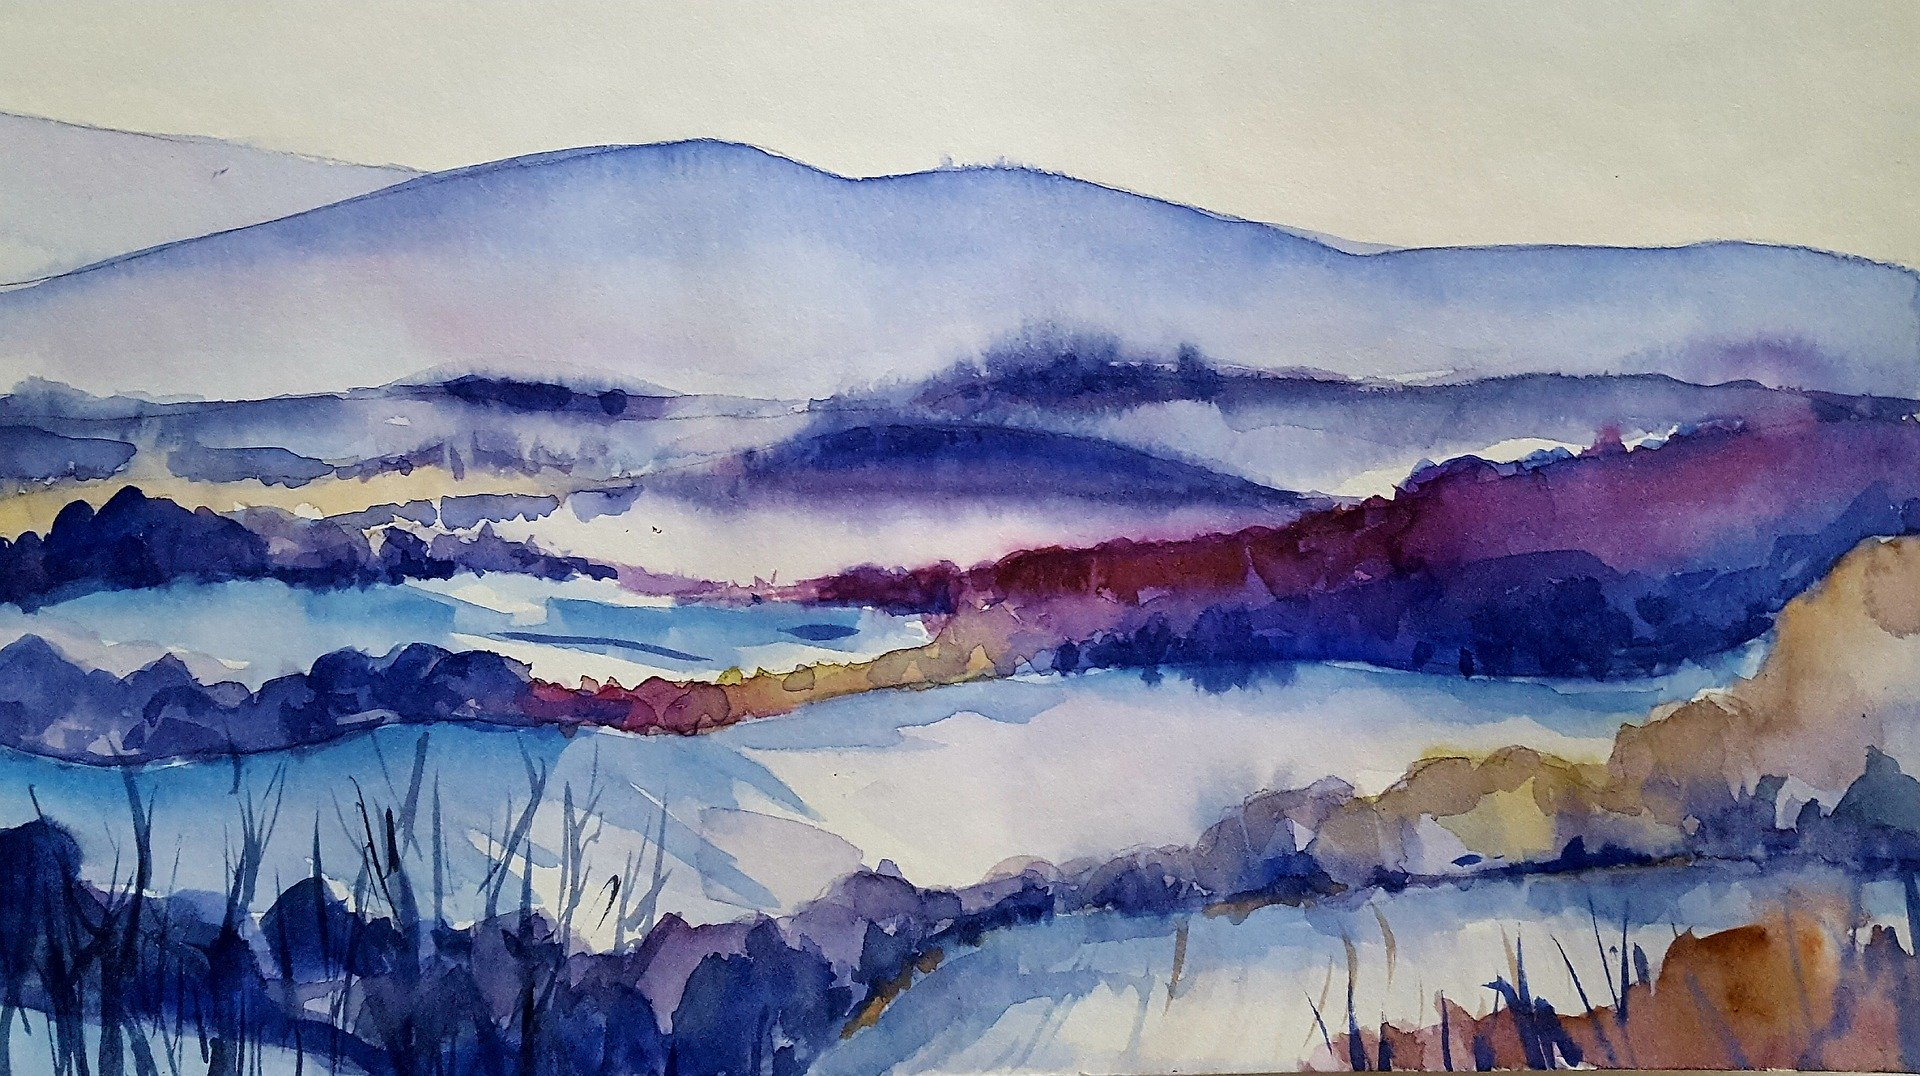 Winter Landscapes - Watercolour & Gouache